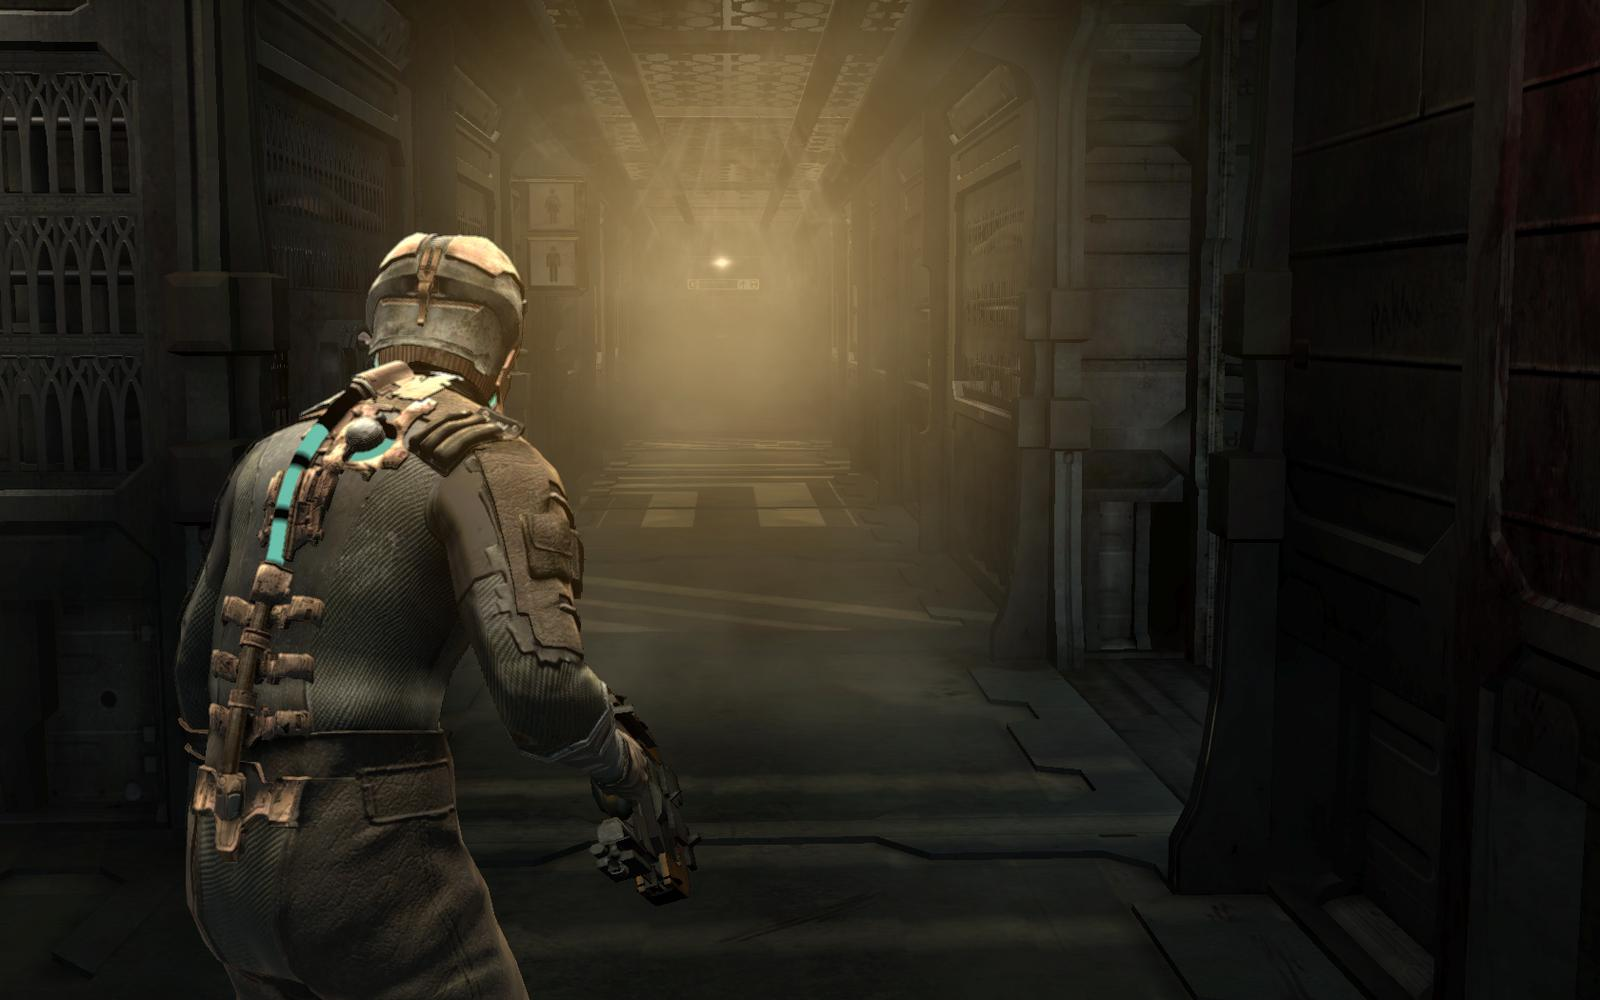 Influences - Like any game, Feral Politique is influenced by other games. Dead Space (pictured) thrived on atmospheric gameplay by eliminating the use of a traditional HUD, instead putting all pertinent information (health, ammo, etc) on the player character itself.Other games that played a role in shaping Feral Politique include Freedom Fighters for its Squad Mechanics and Resident Evil 5 for how it manages its inventory.